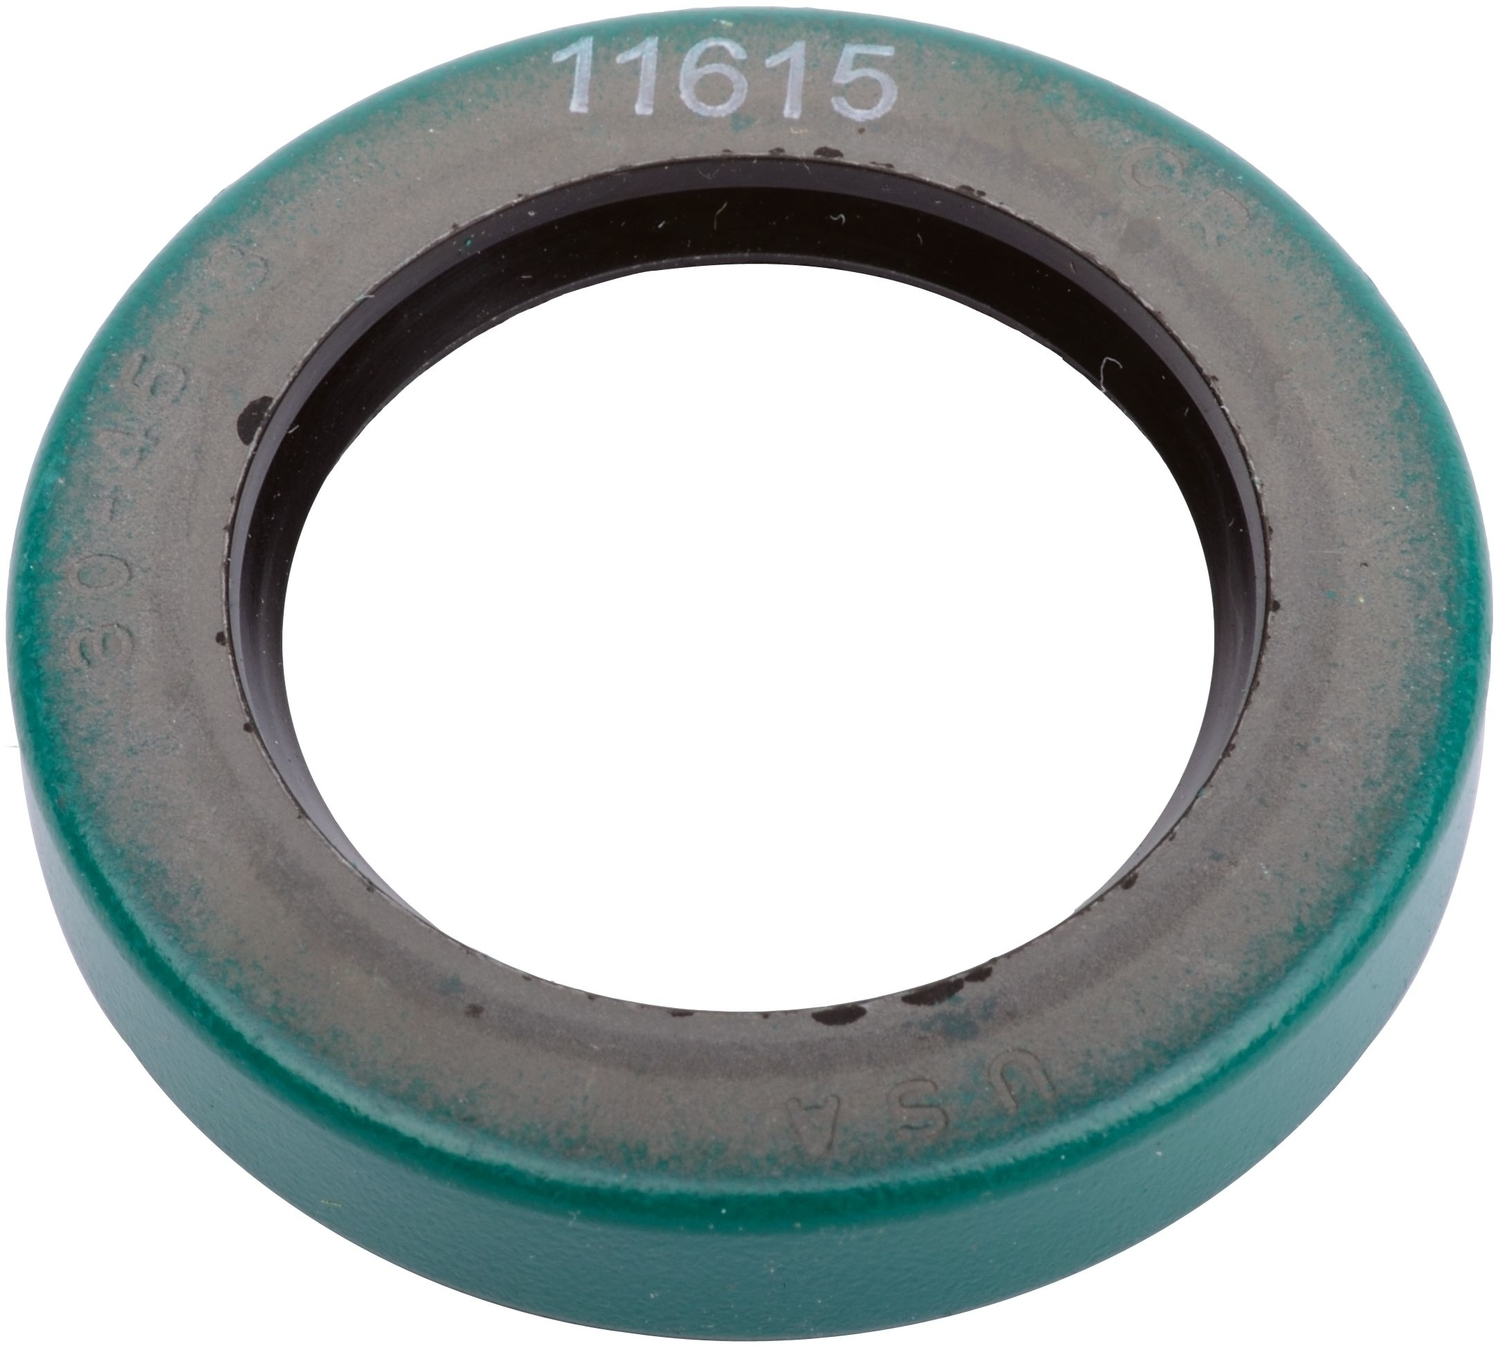 SKF (CHICAGO RAWHIDE) - Manual Trans Input Shaft Seal - SKF 11615